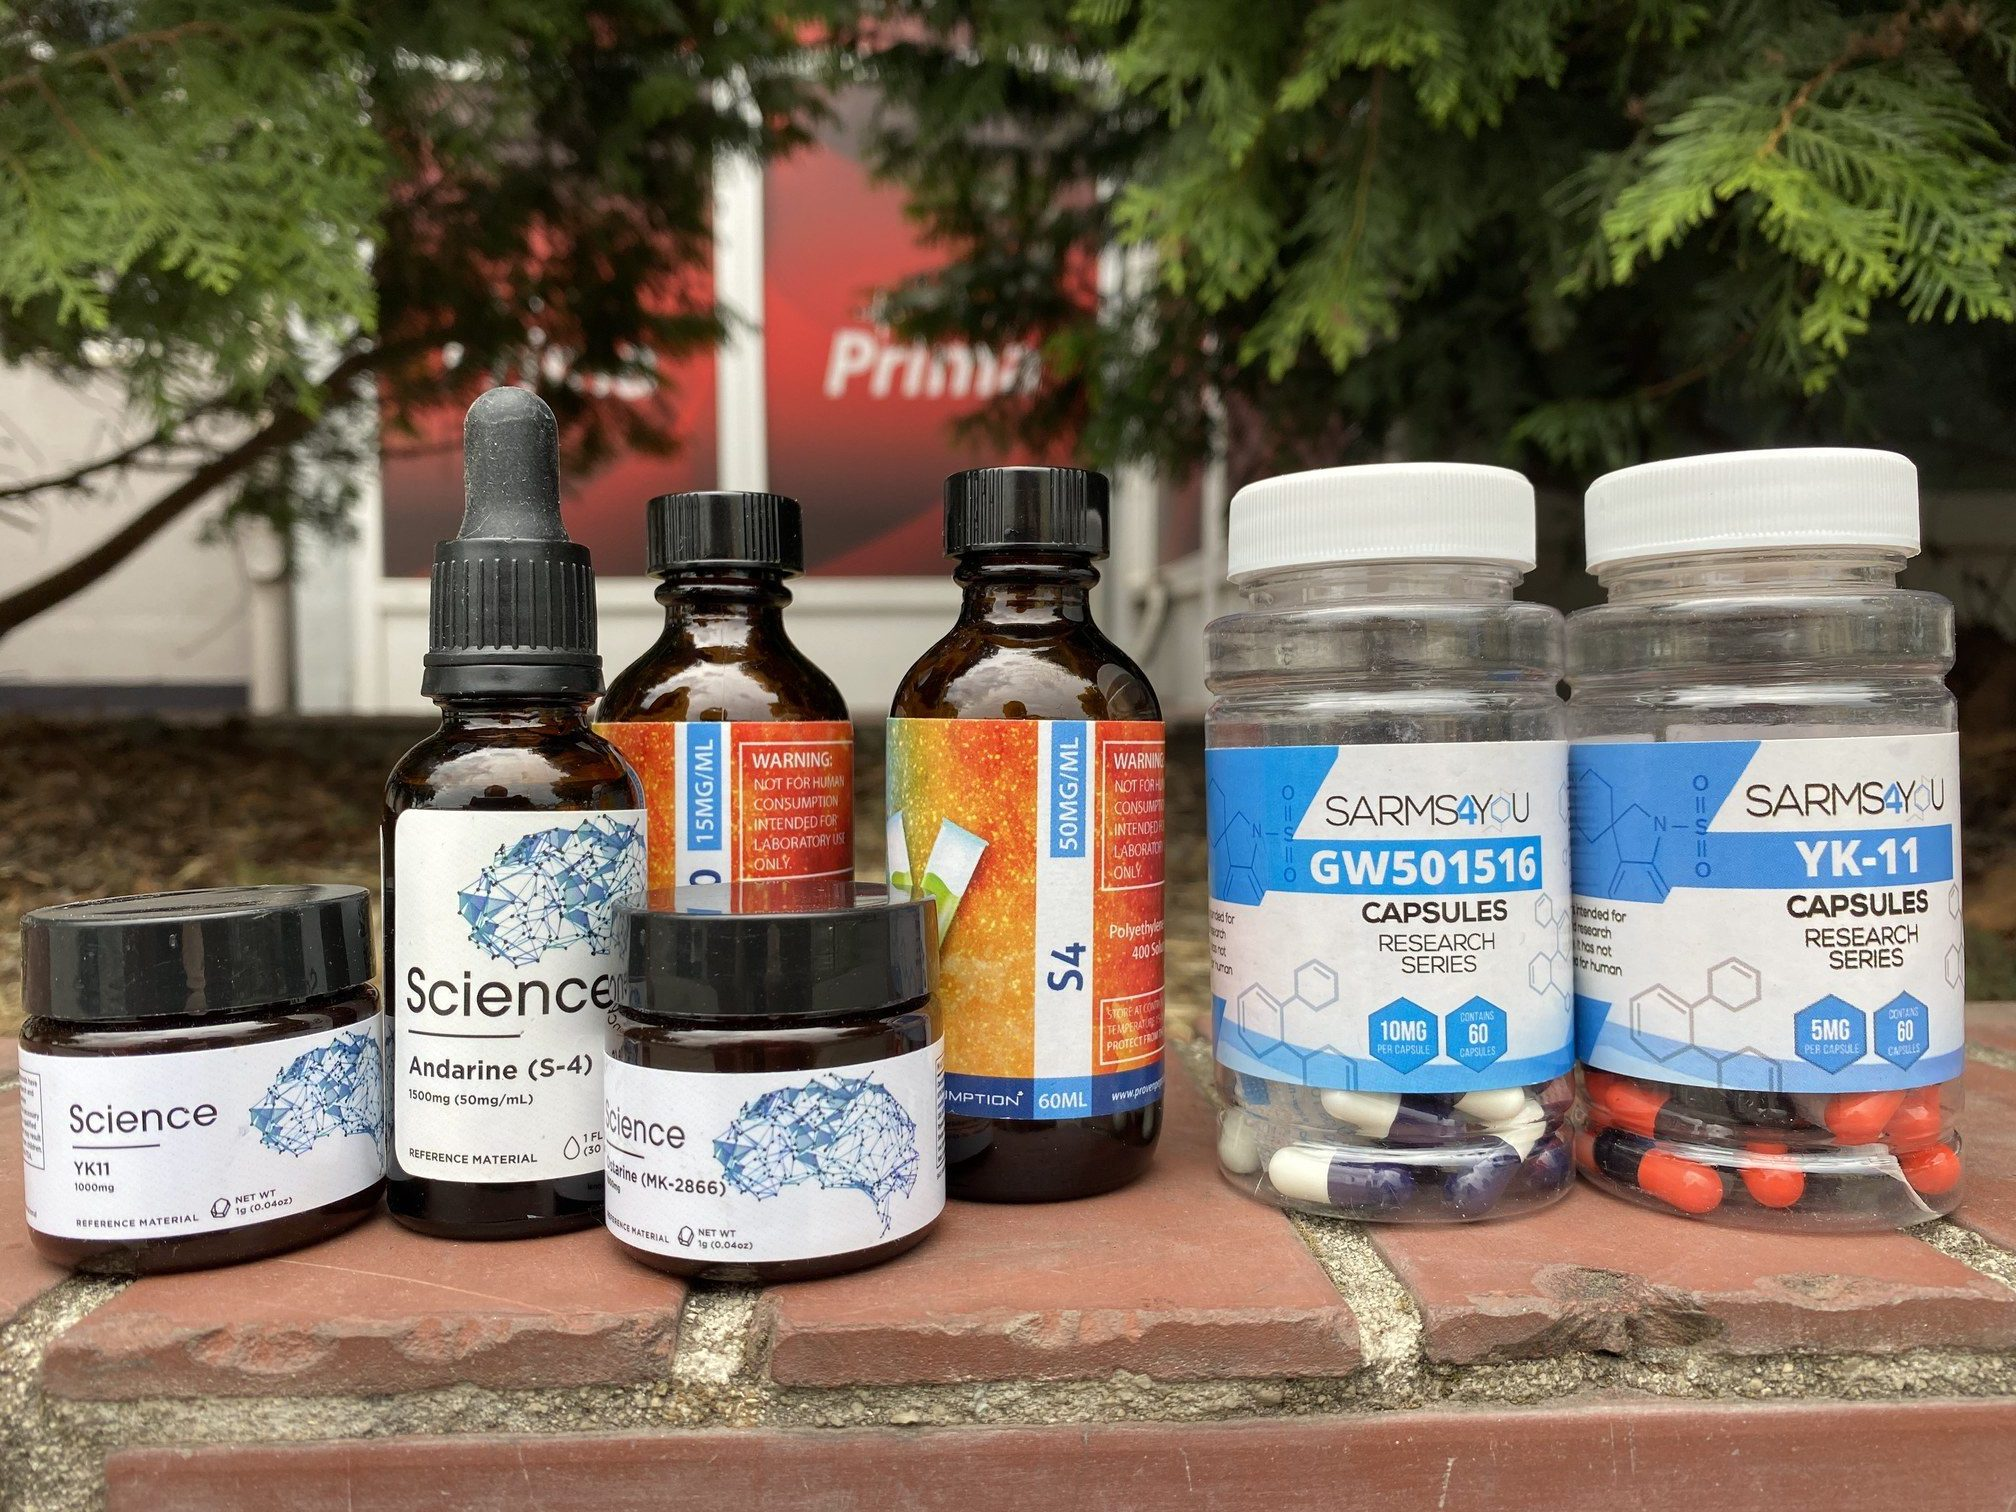 Where To Buy SARMs: The Best SARMs Sources Revealed - My bodybuilding journey